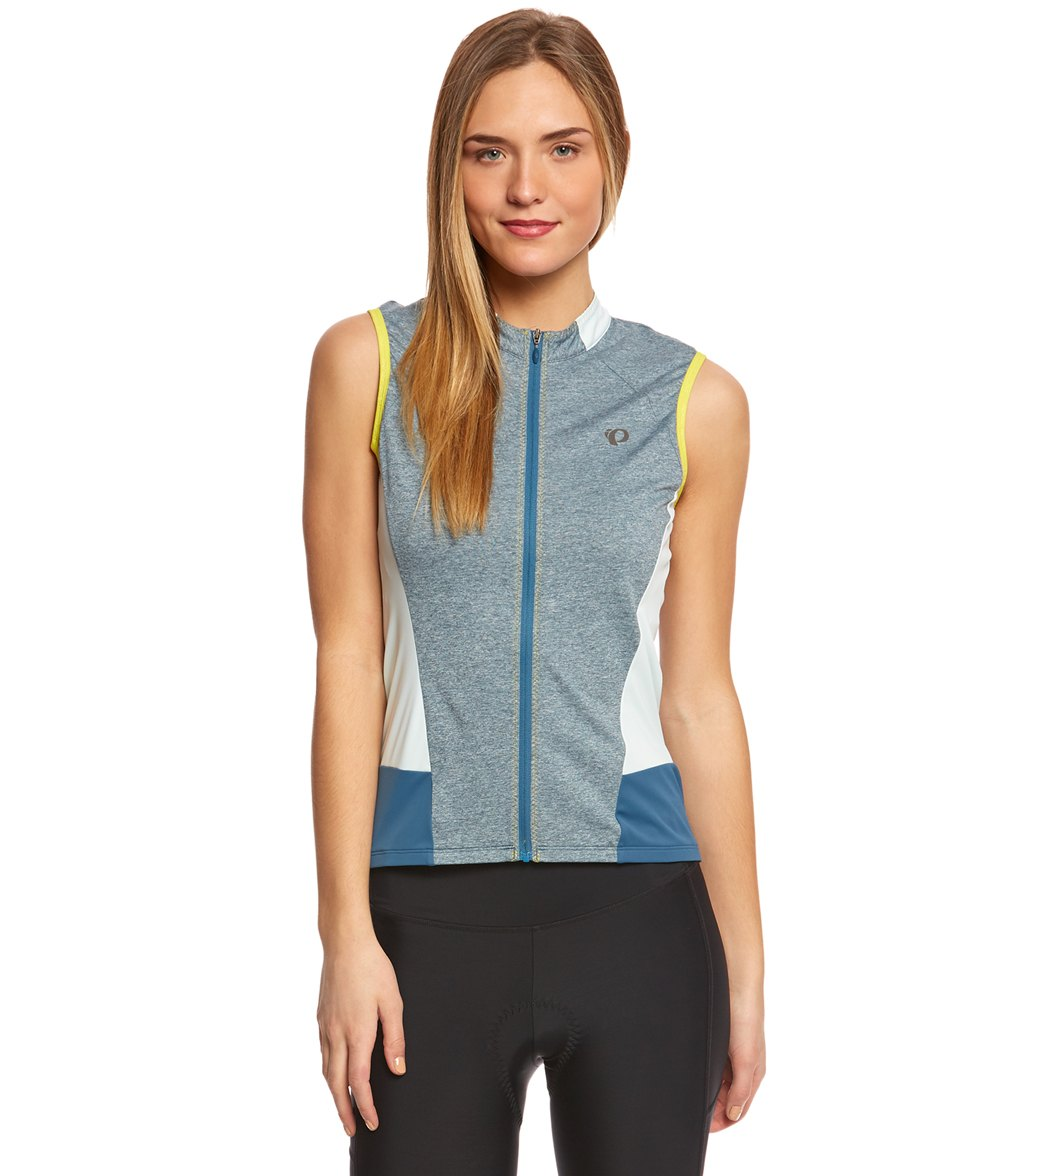 Pearl Izumi Women s Select Escape Sleeveless Cycling Jersey at  SwimOutlet.com - Free Shipping 824e2dc2a